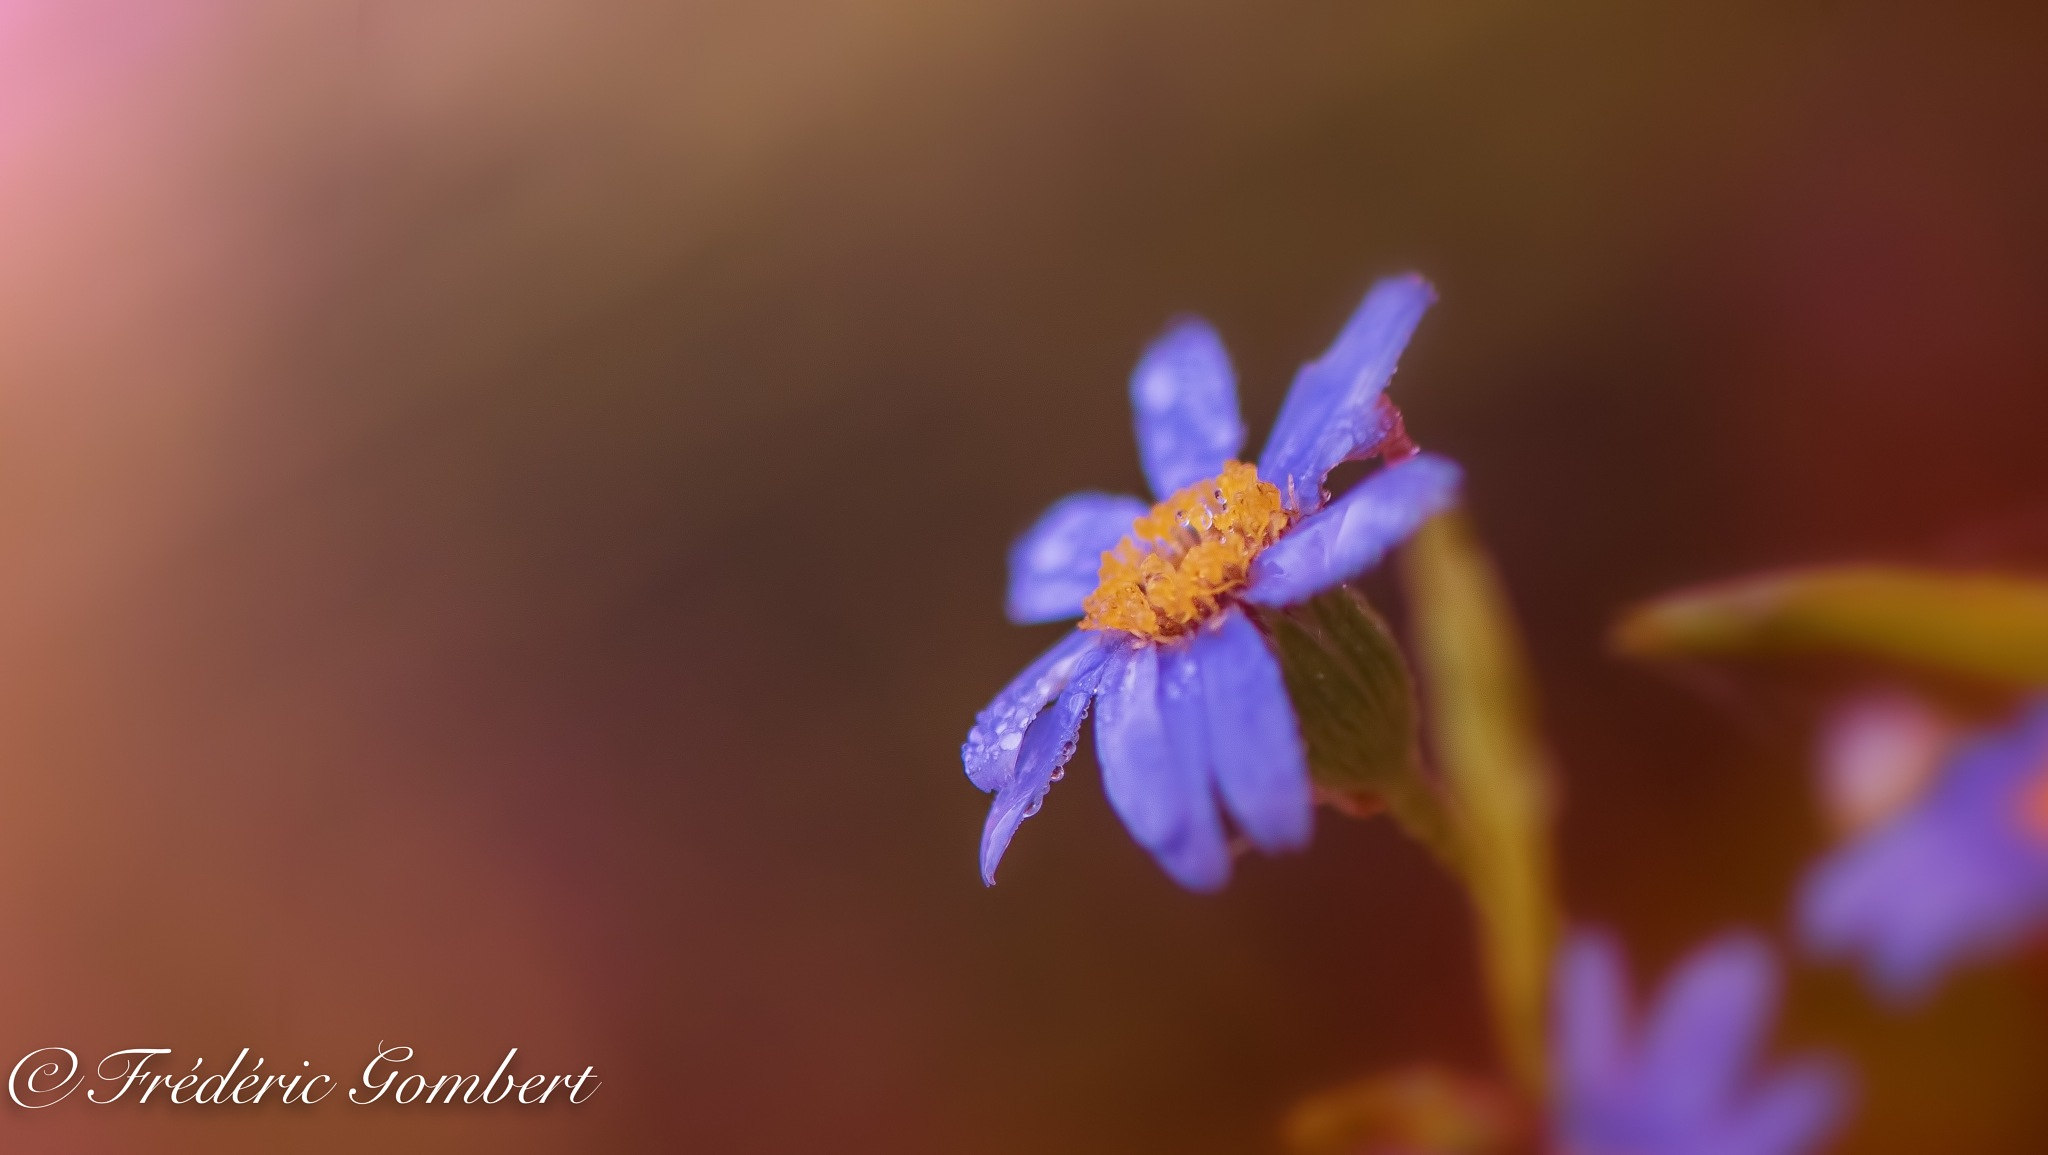 tiny droplets of autumn by Frederic Gombert